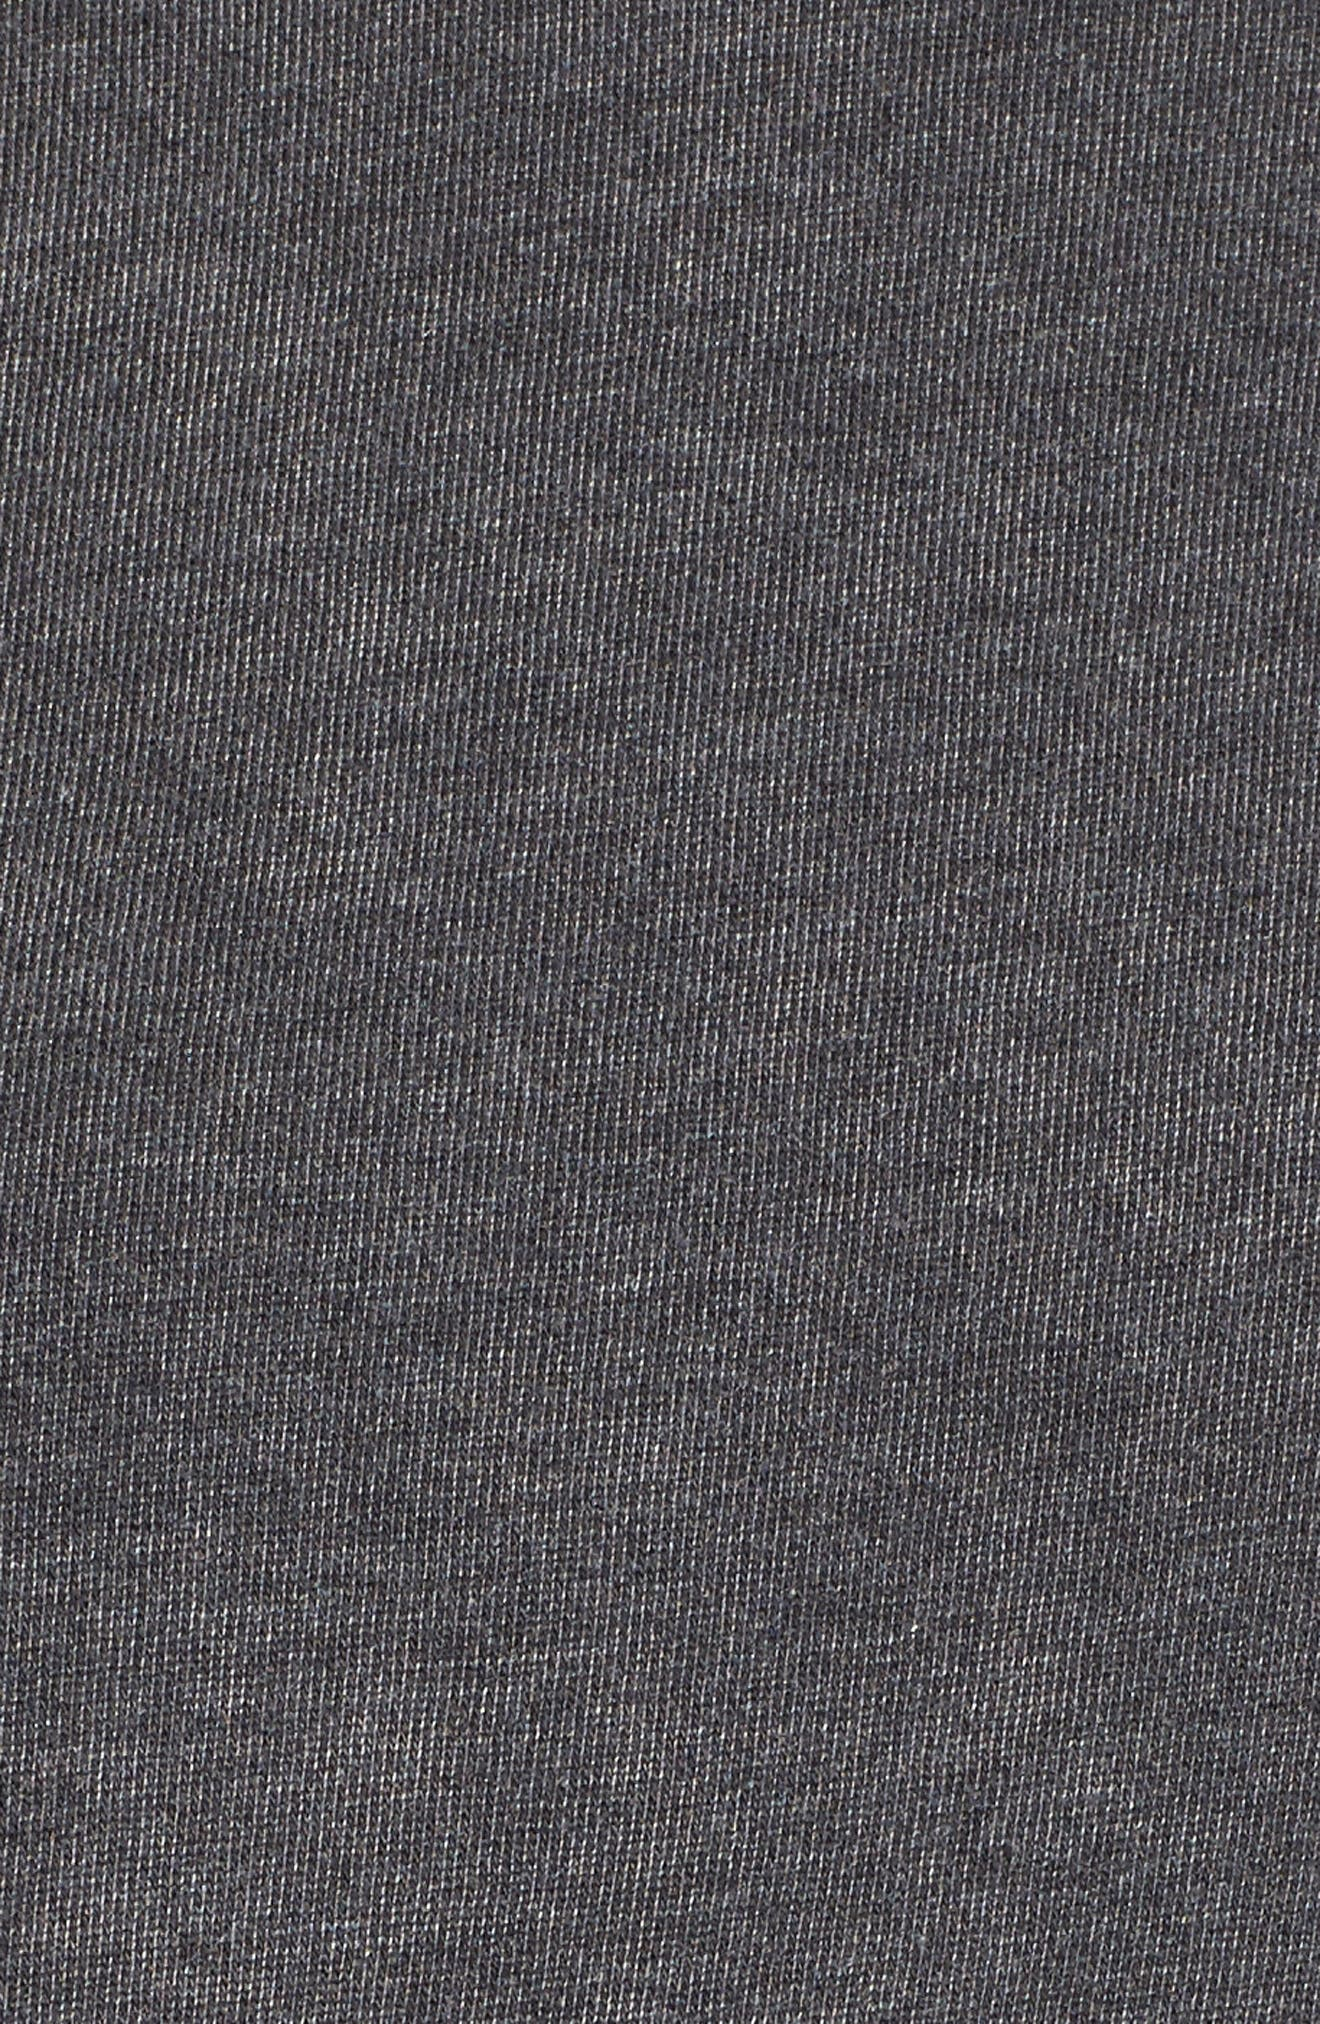 Lace-Up Fleece Pullover,                             Alternate thumbnail 5, color,                             001